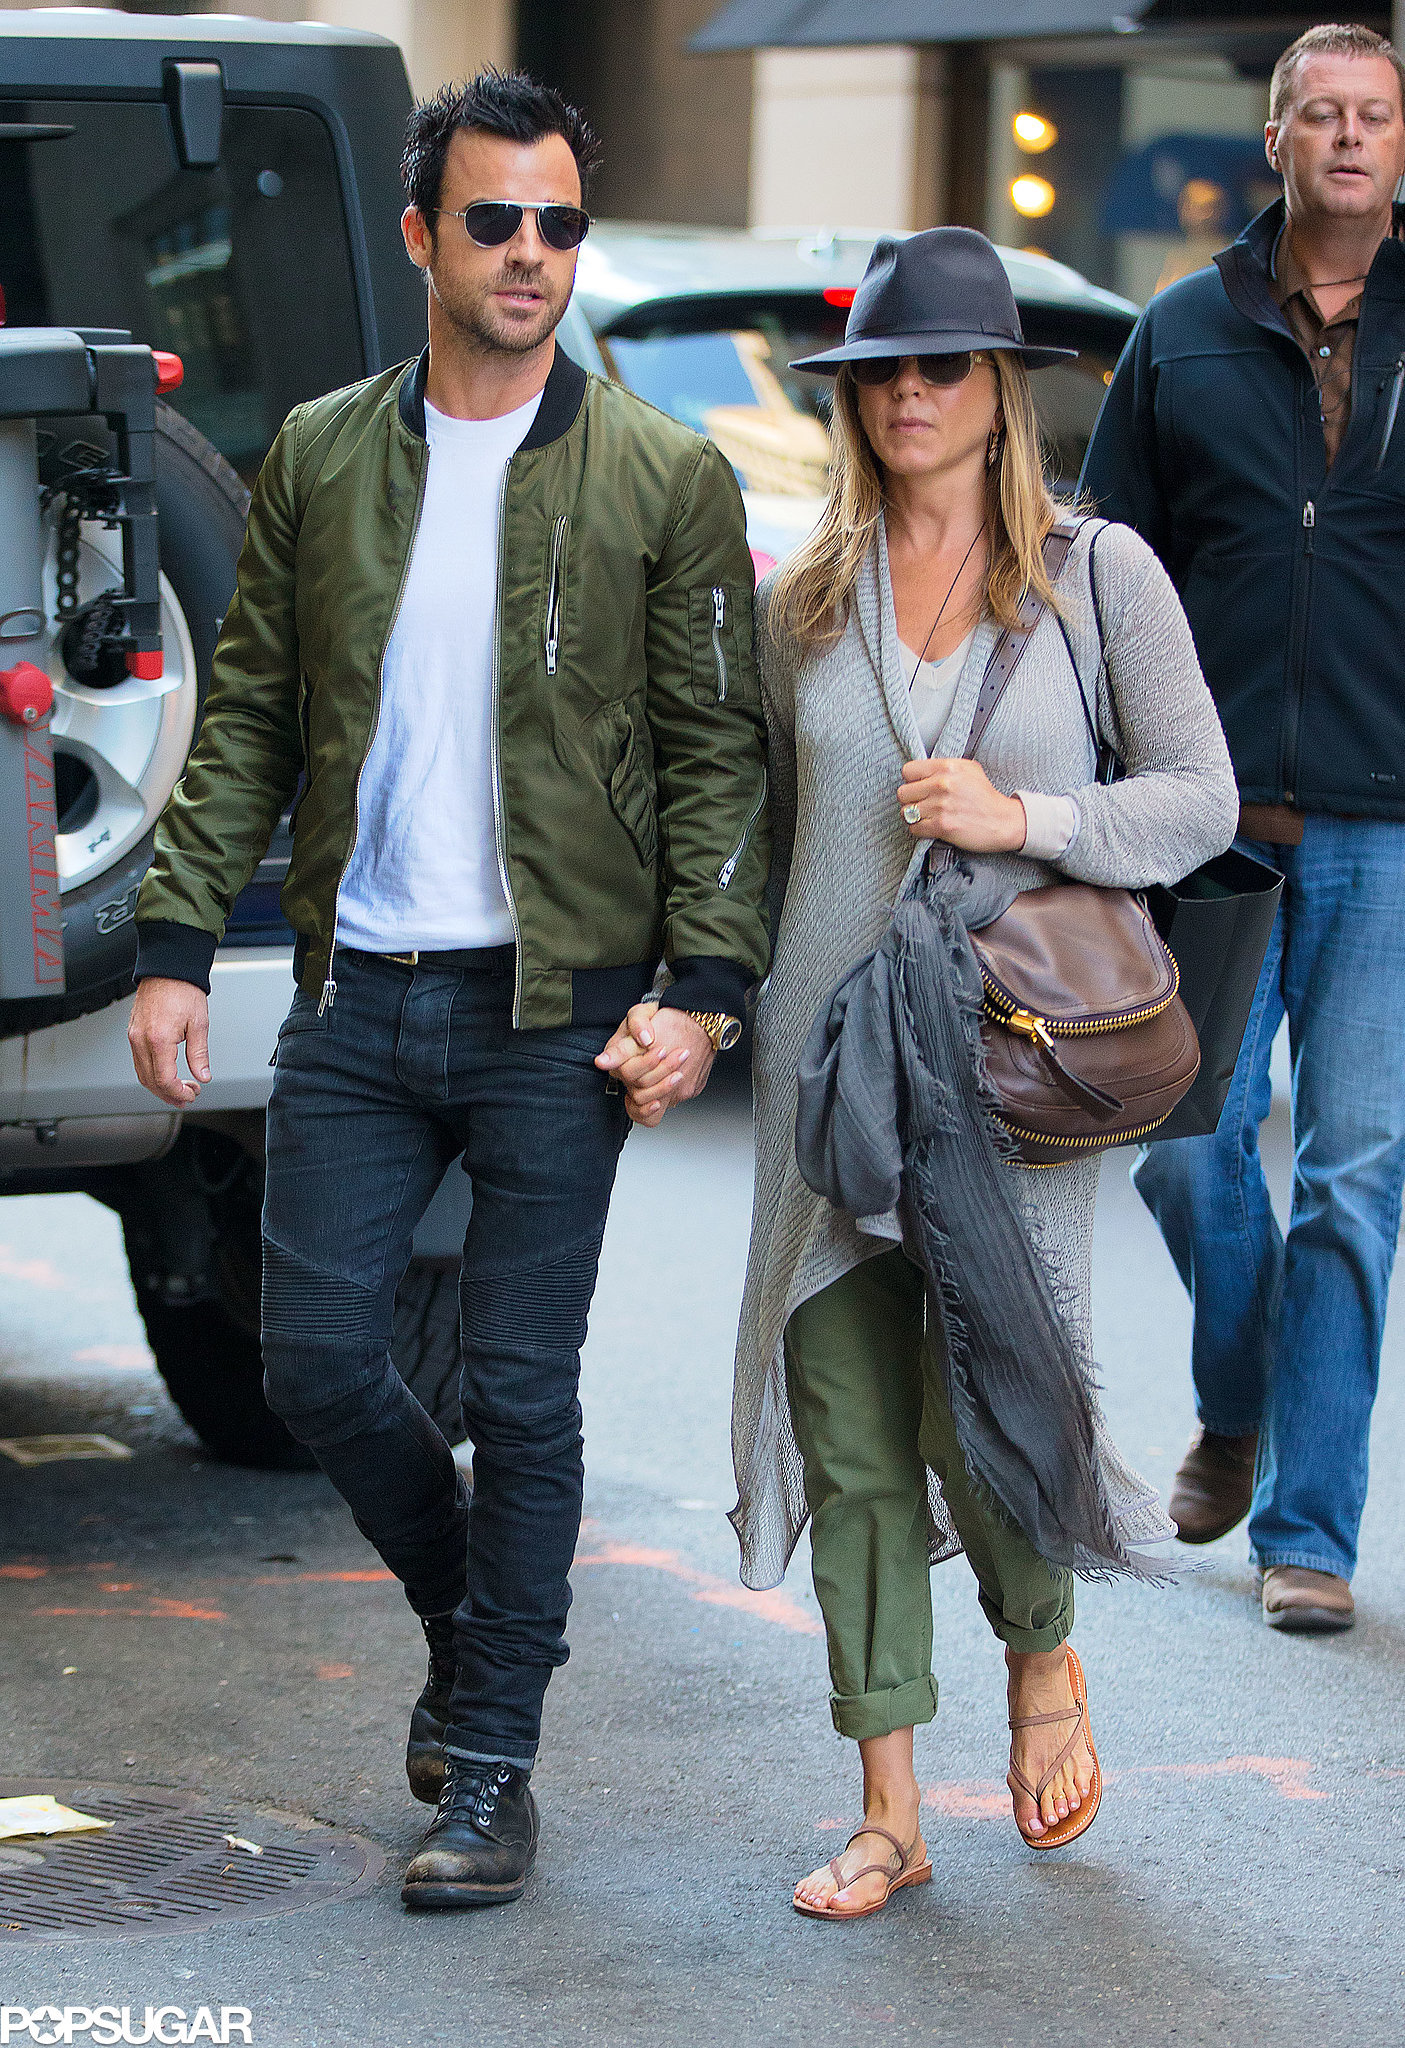 The couple held hands during a day of shopping in NYC in May 2013.